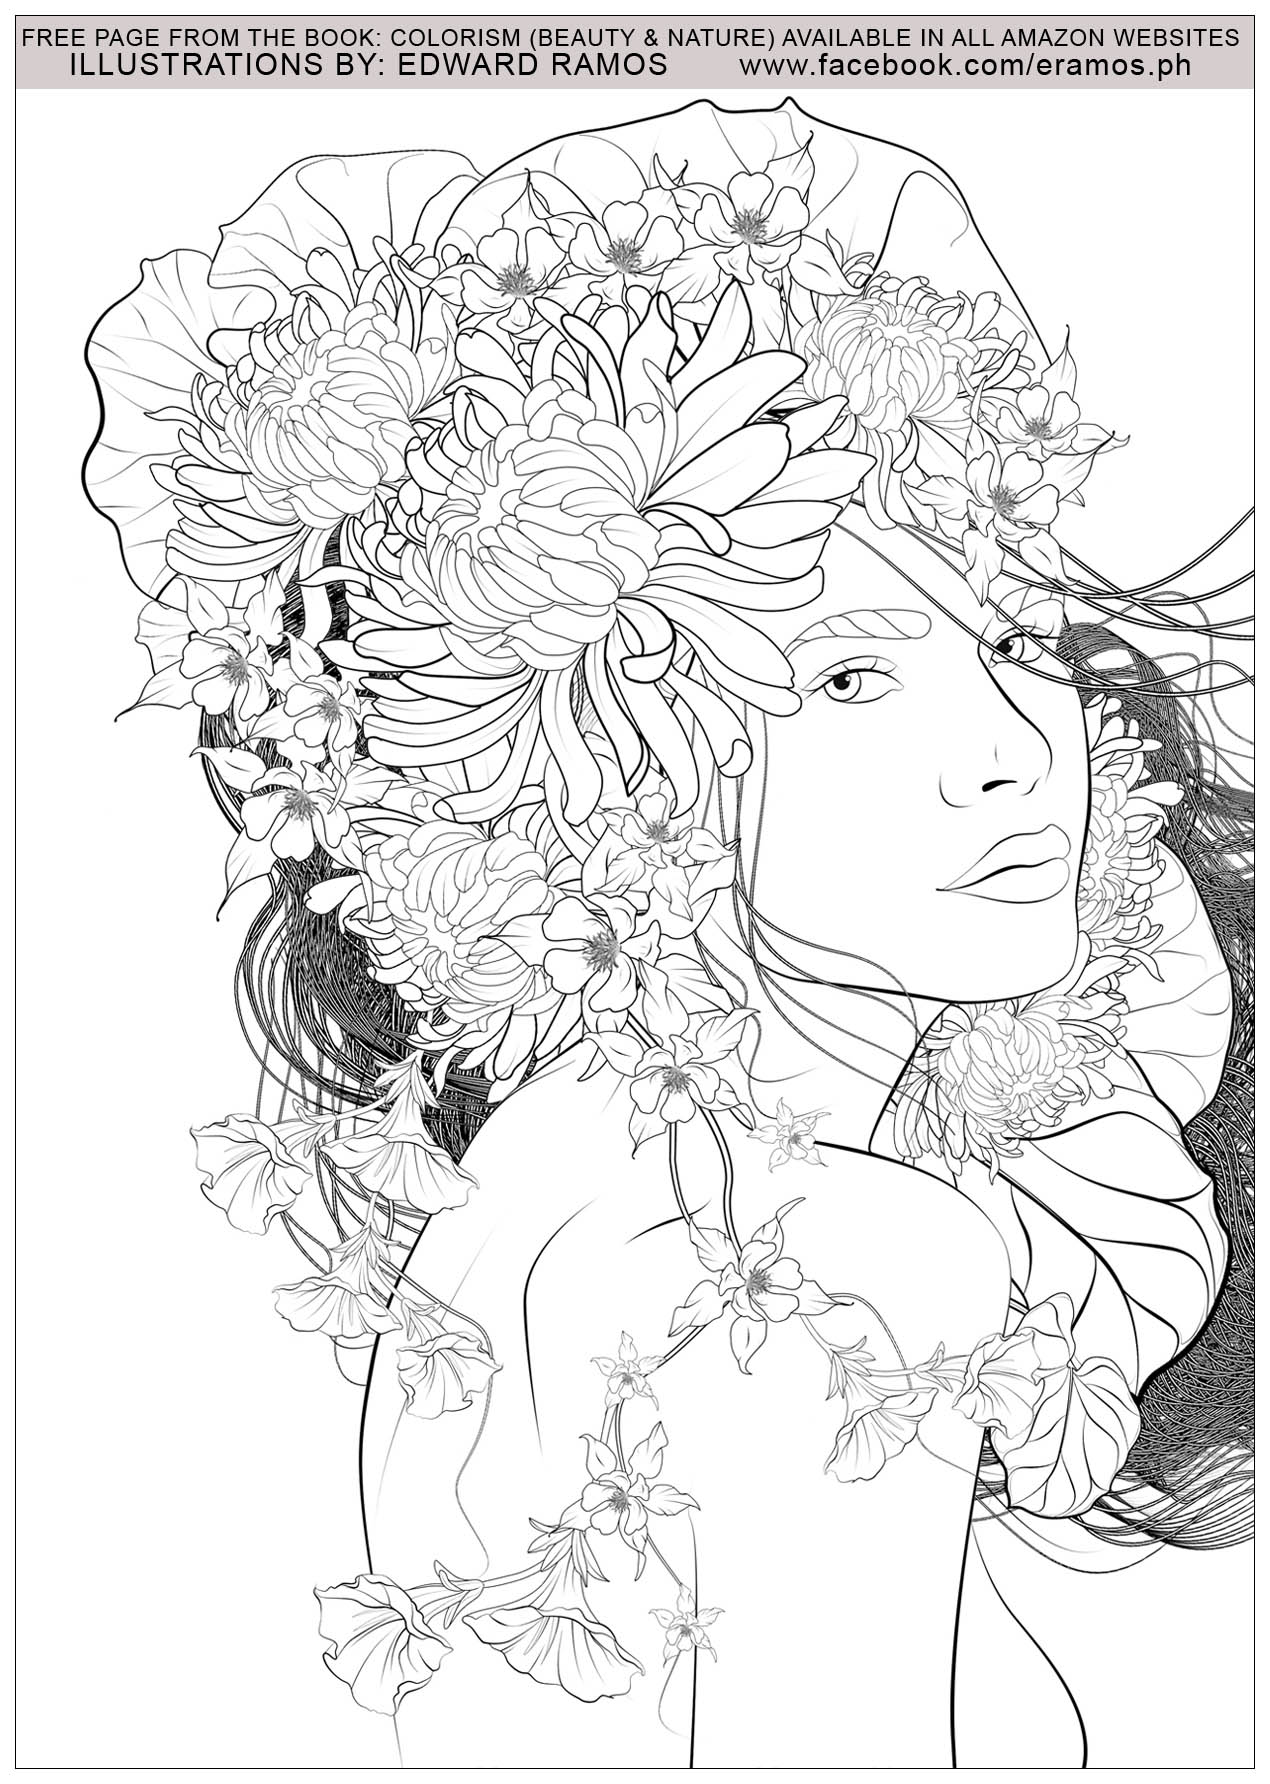 coloriage beauty and nature edward ramos 2